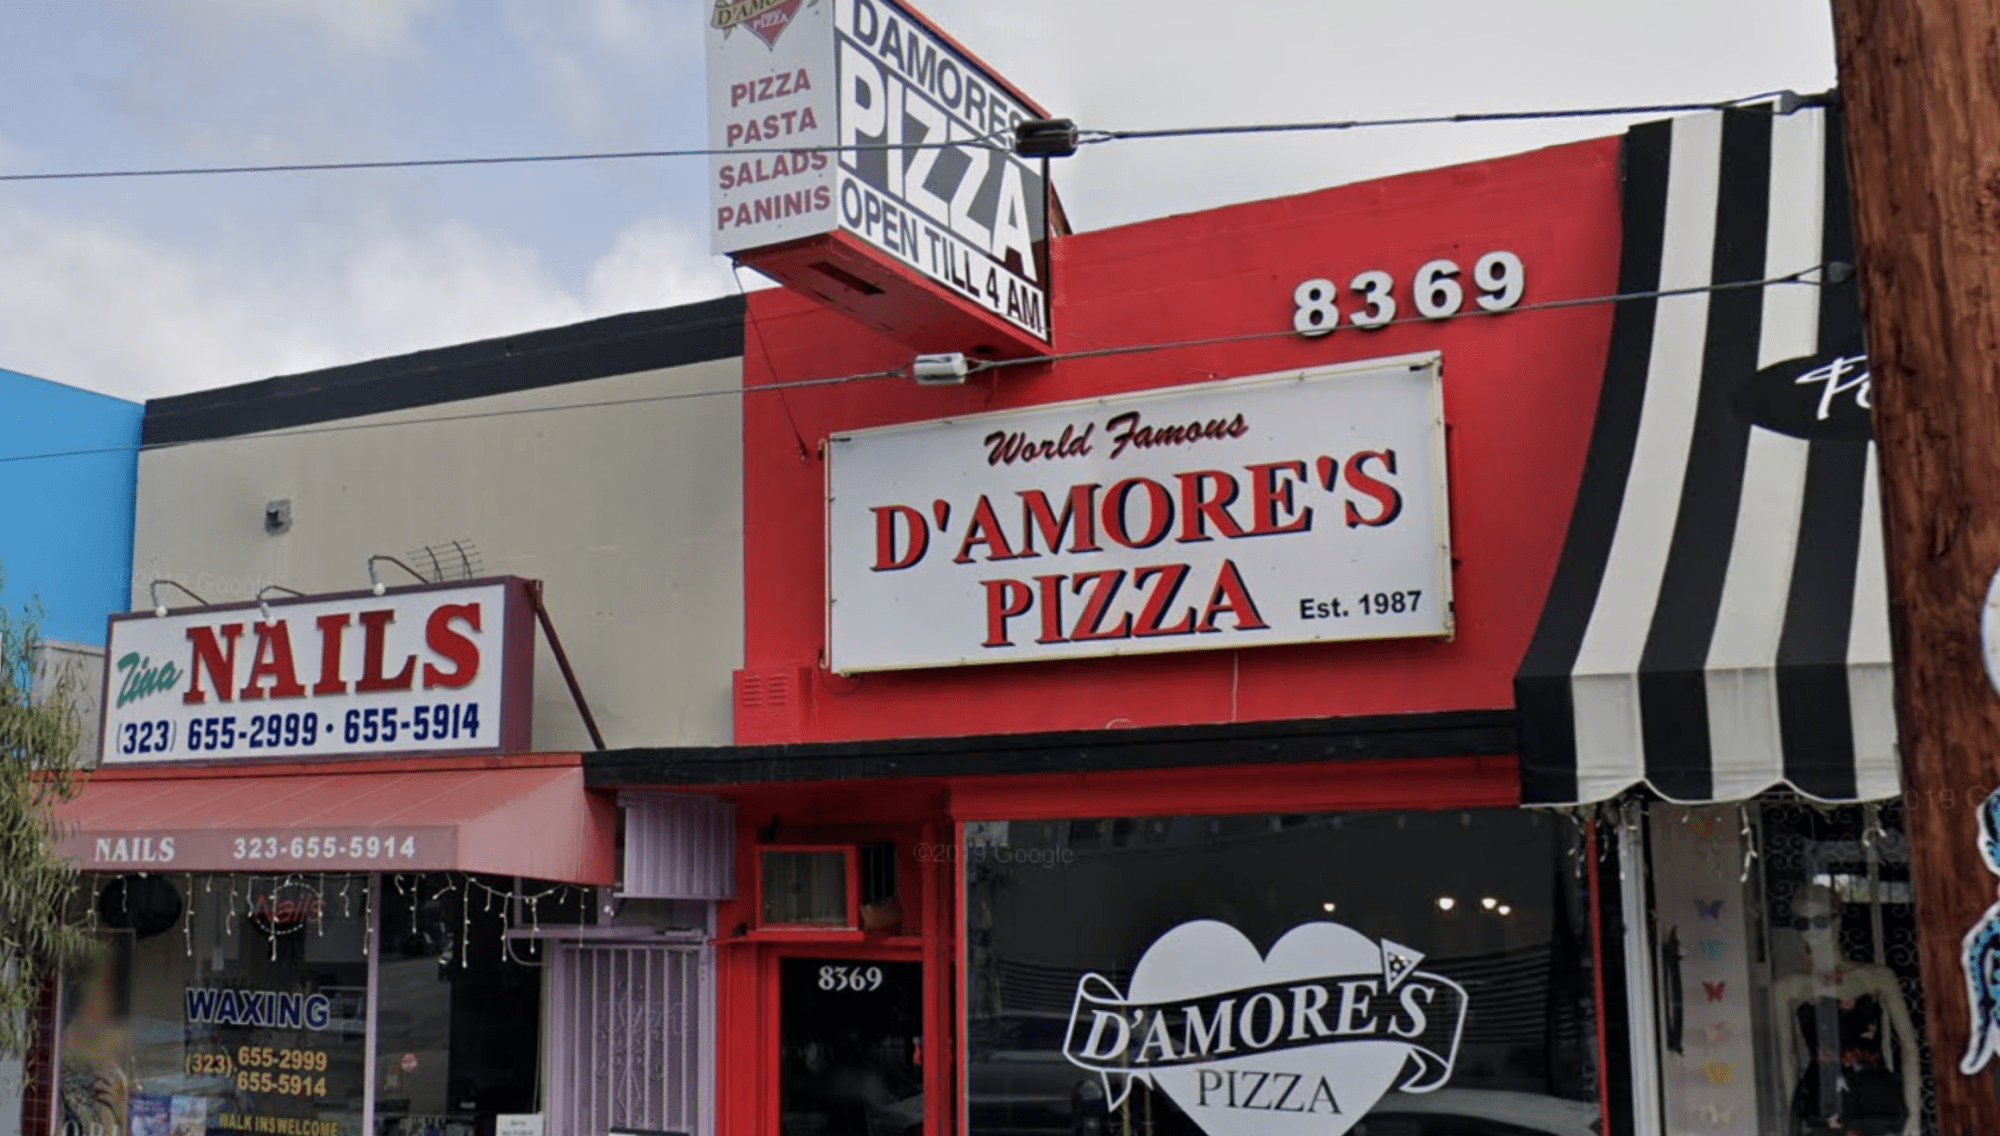 D'Amore's Pizza on West 3rd Street in Central L.A. is seen in a Google Maps Street View image.